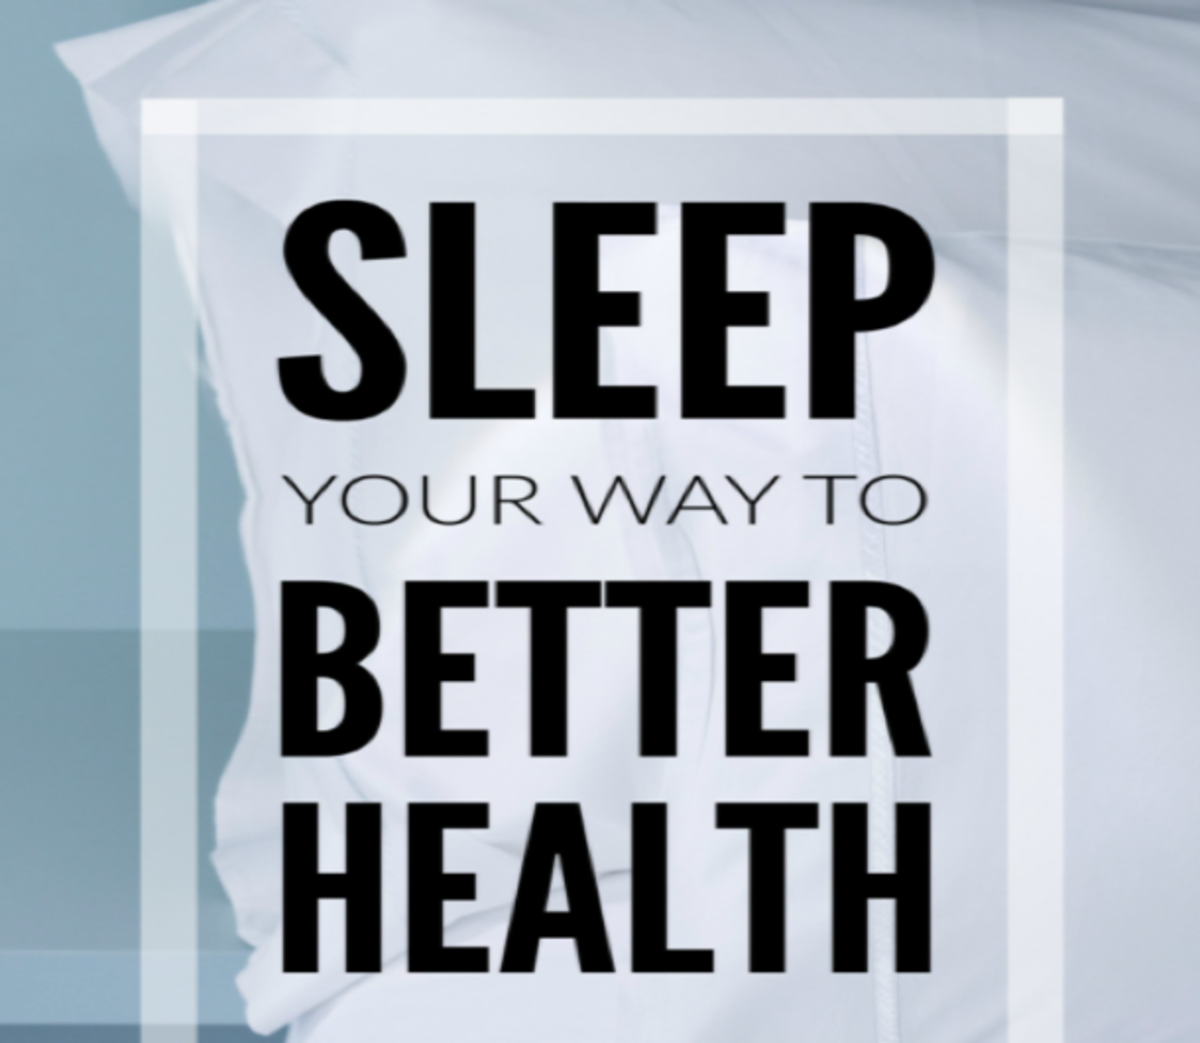 4-things-for-better-health-and-life